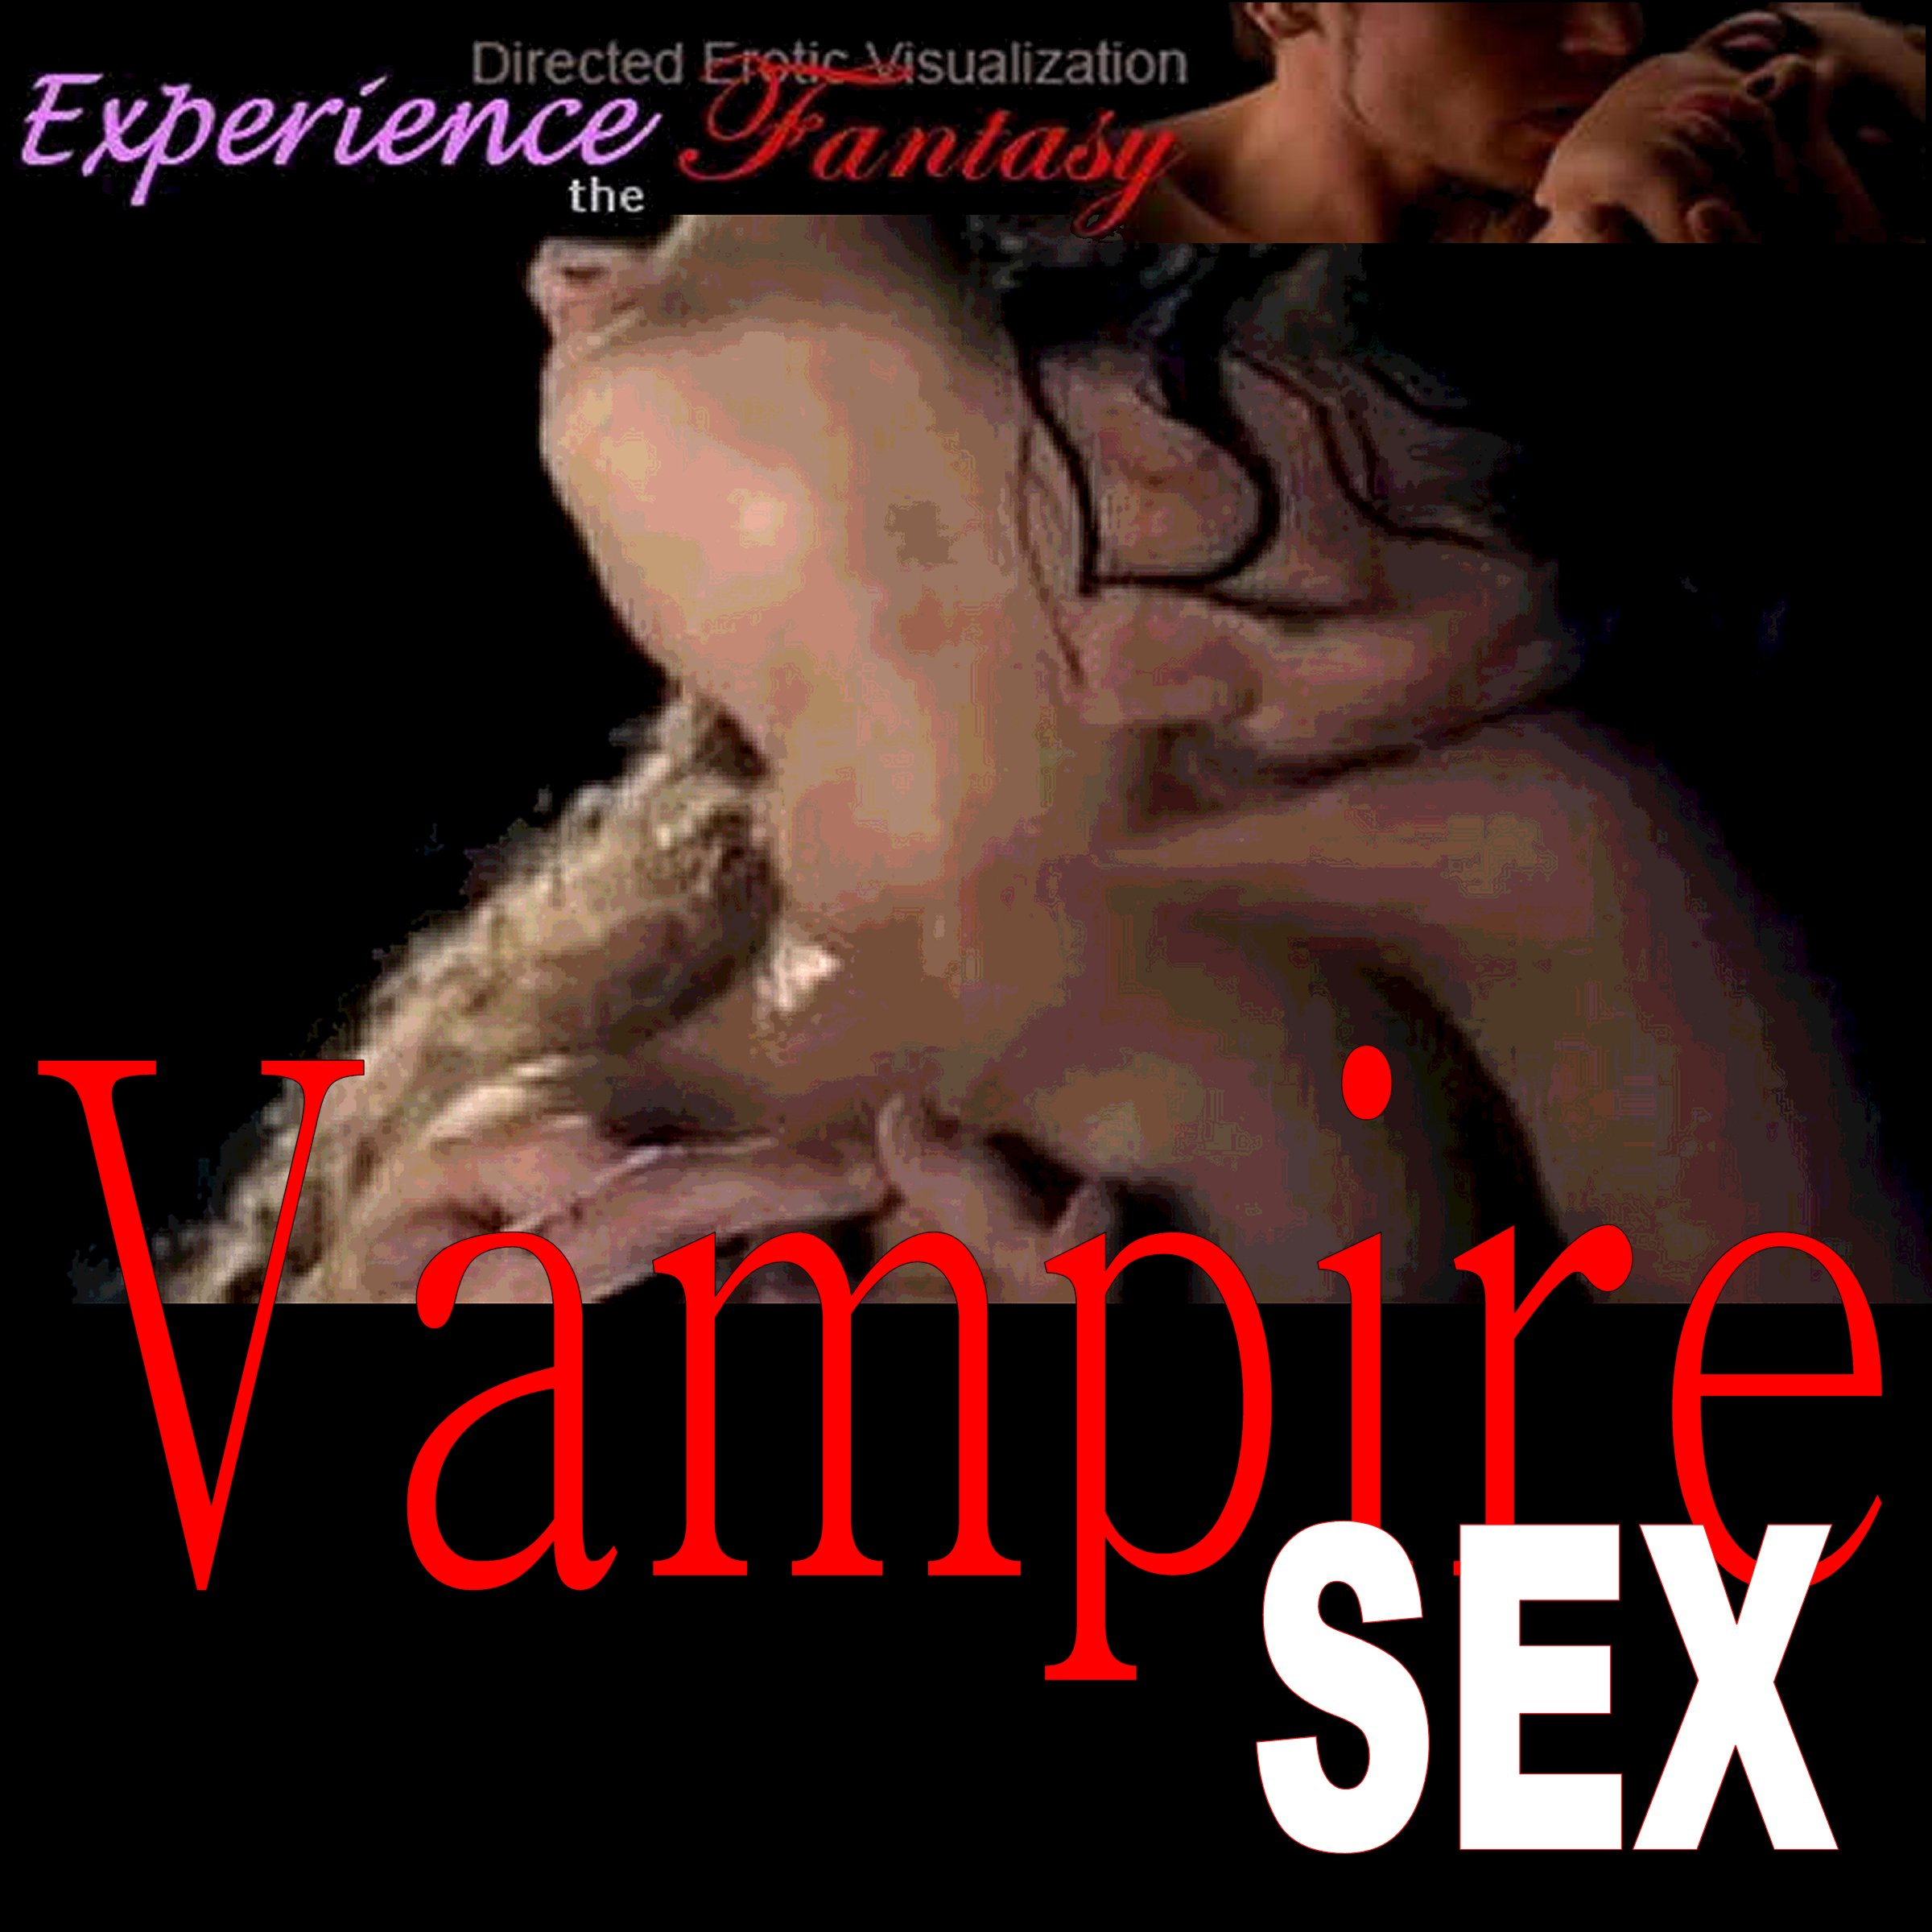 Vampire sex movie download exploited beauty women